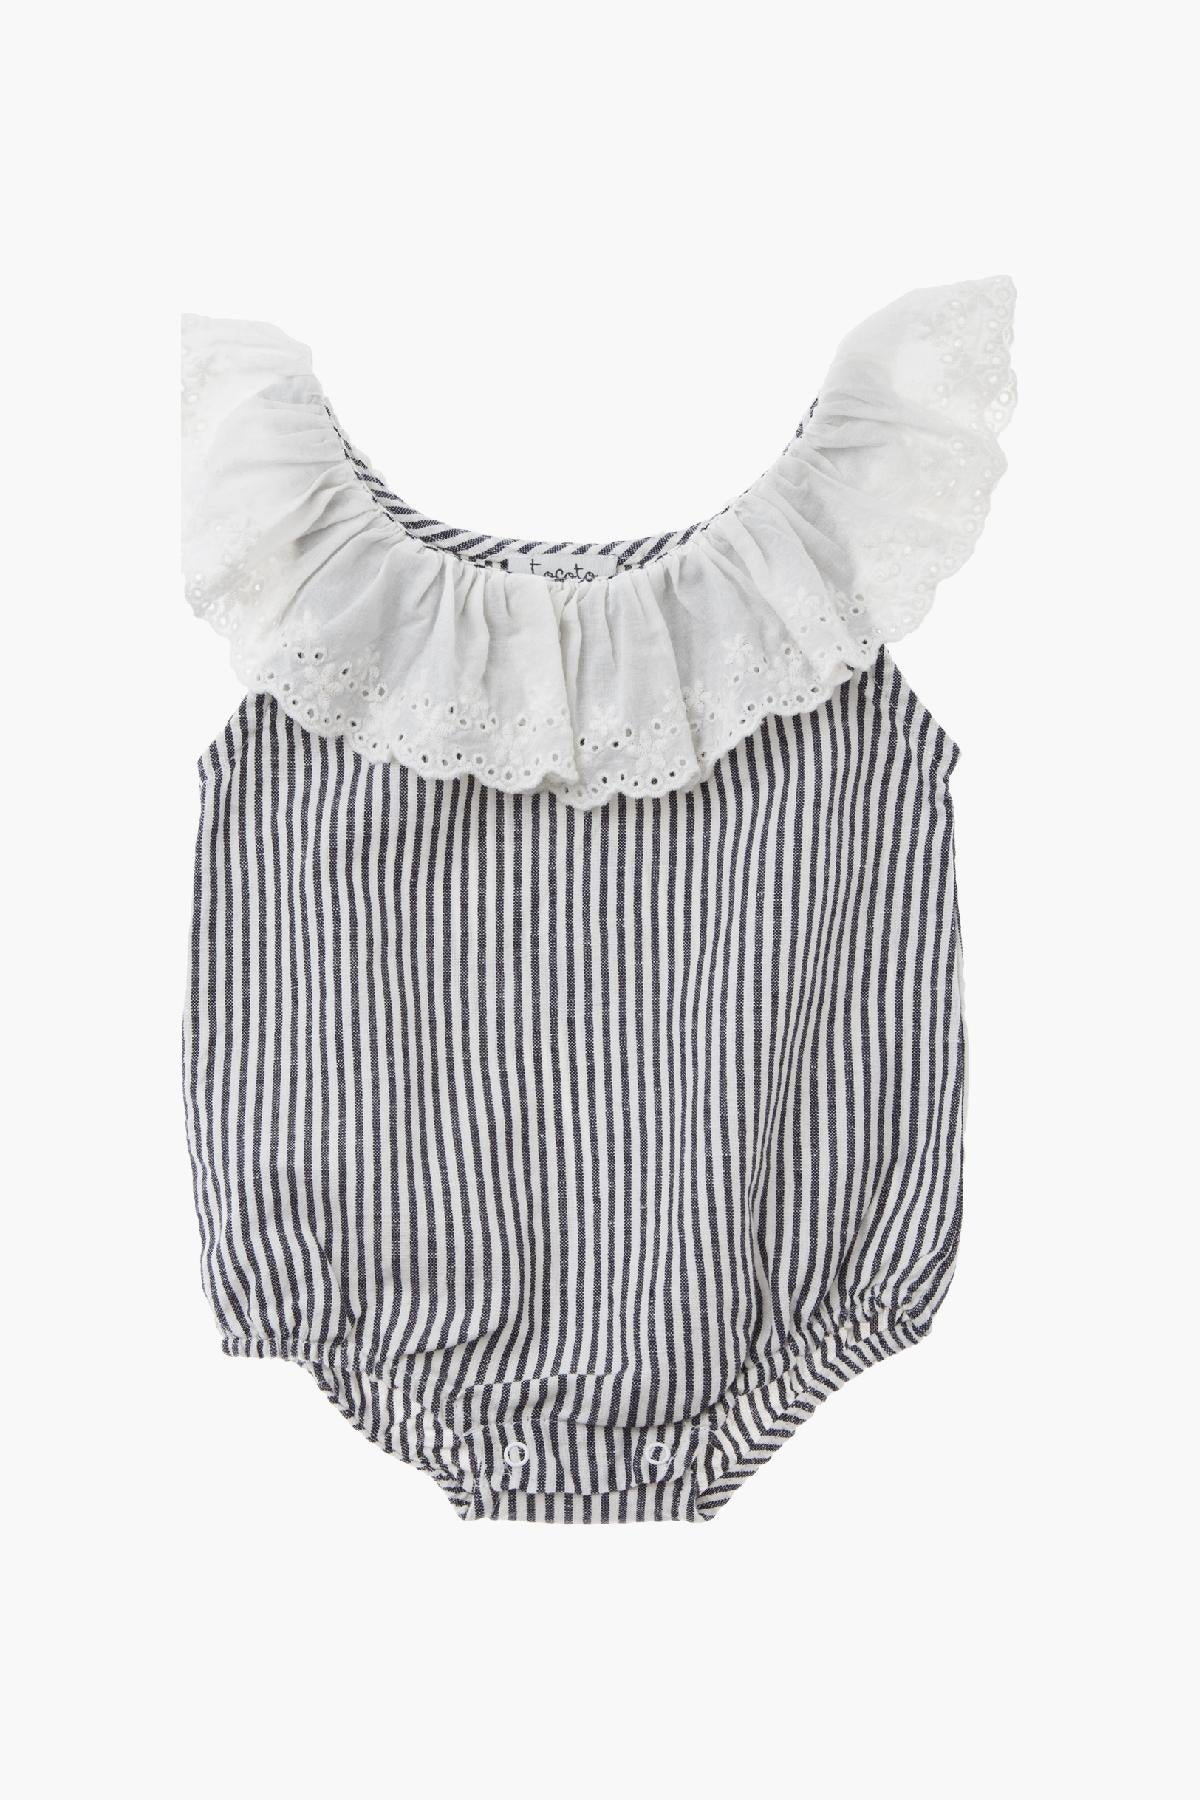 1cec14ba210 Tocoto Vintage Baby Girl Striped Romper With Bonnet - Mini Ruby